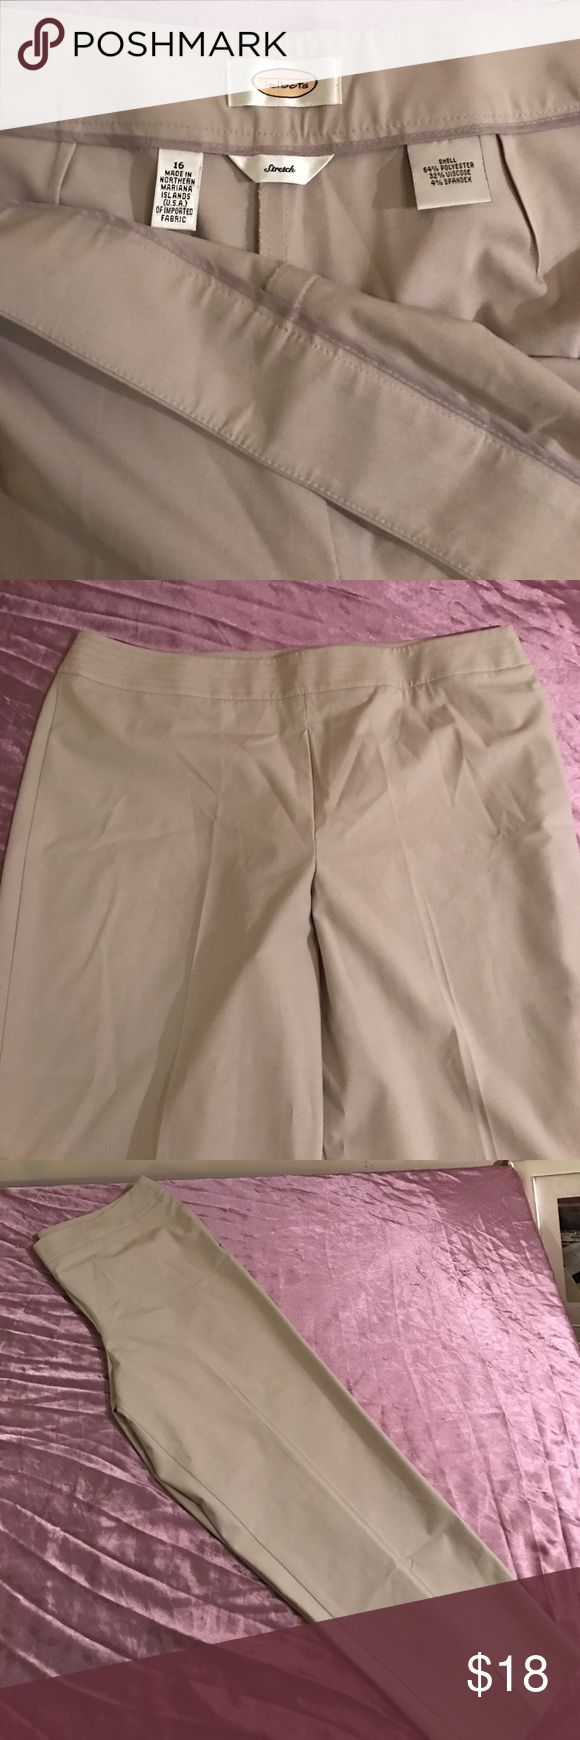 Talbots Plus Size pants Talbots Plus Size pants inseam 29 inches Talbots Pants